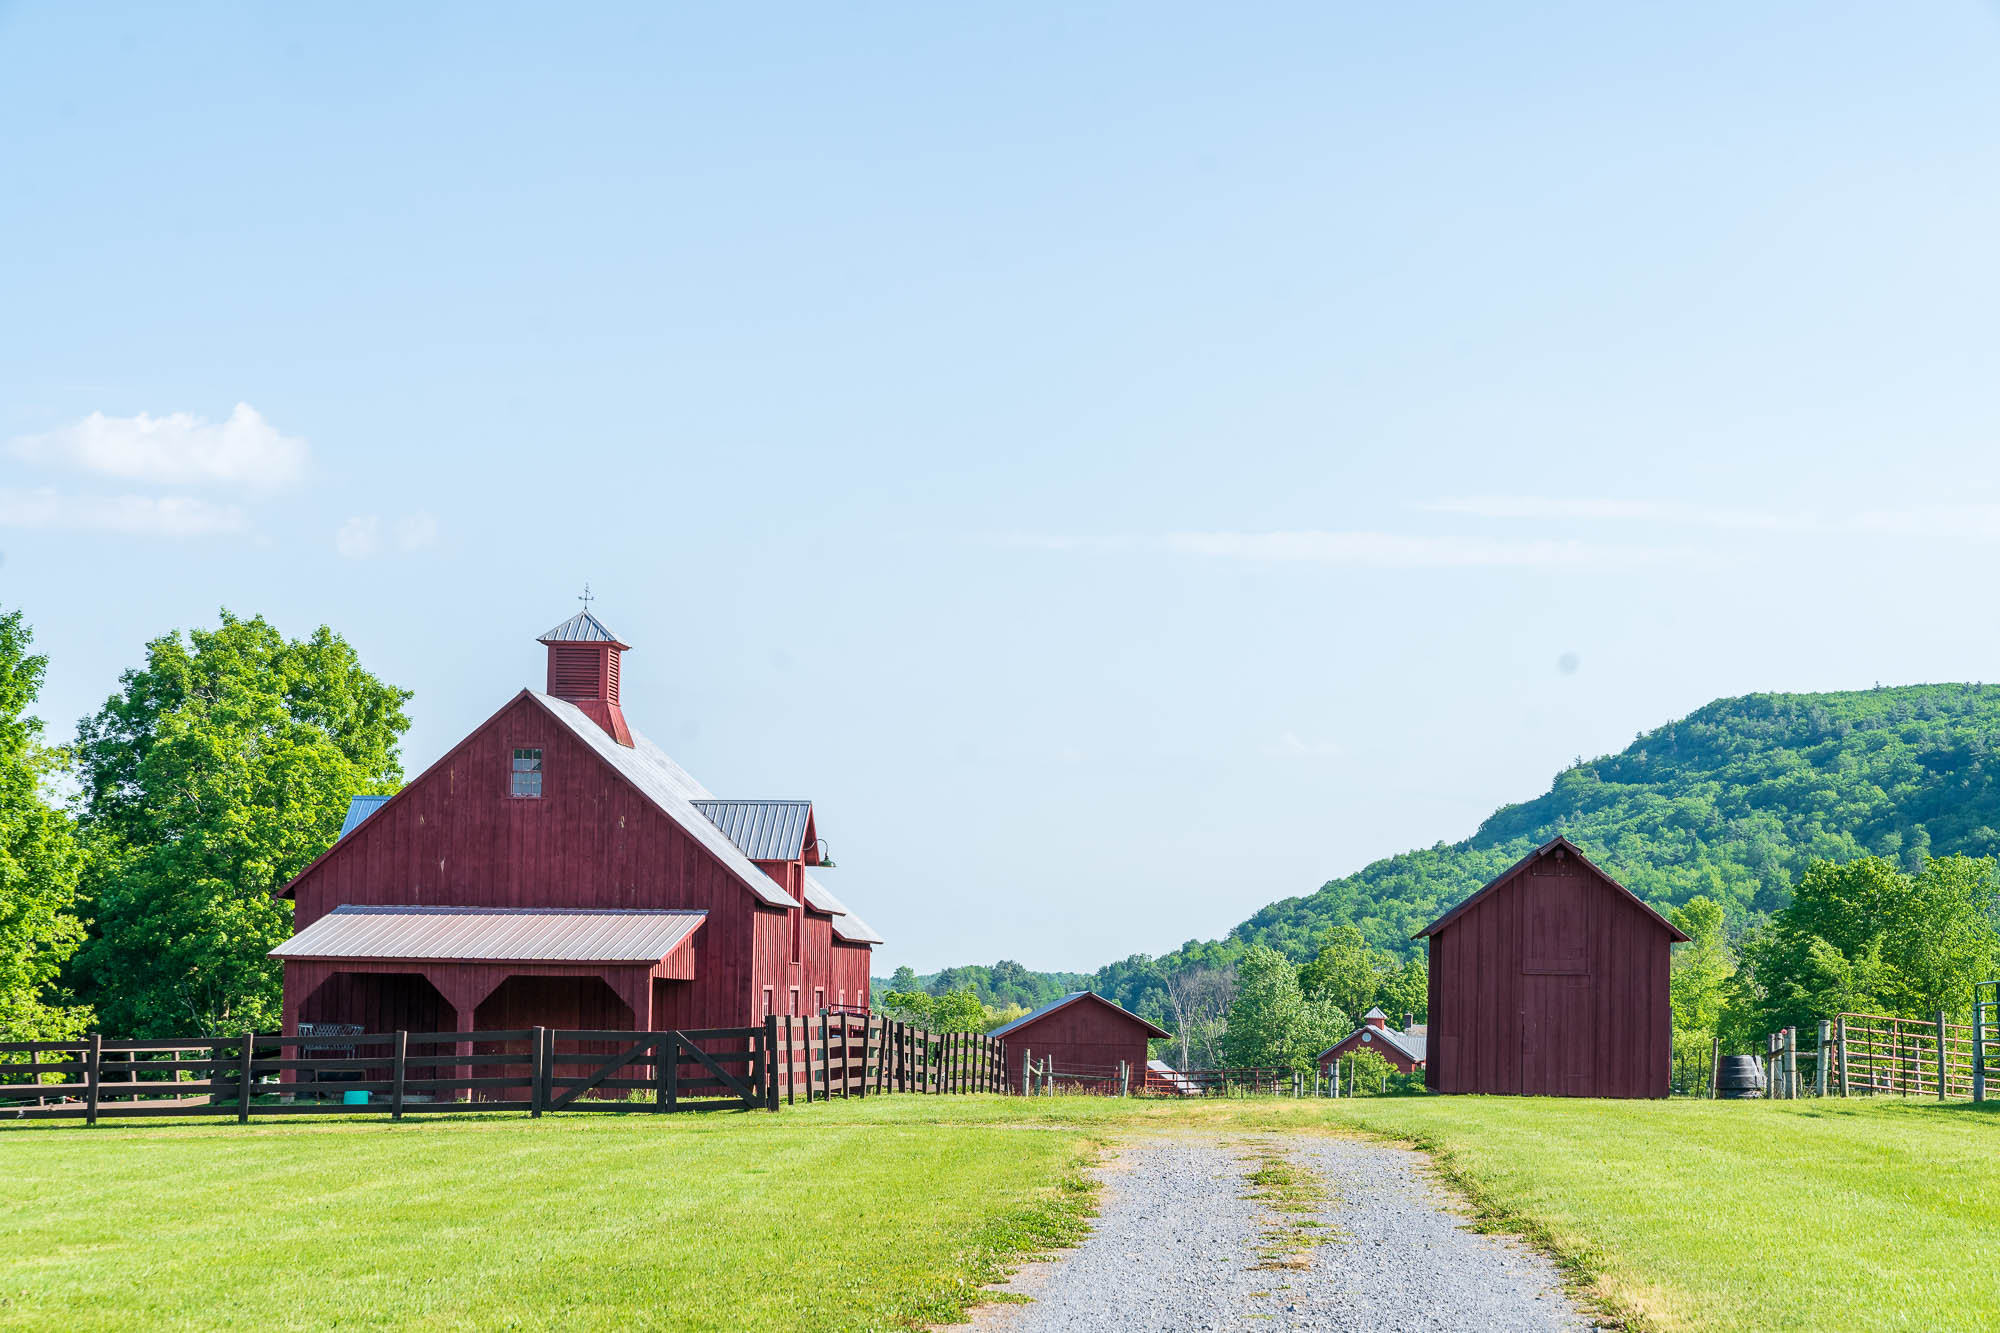 iconic red barns, Addison County VT